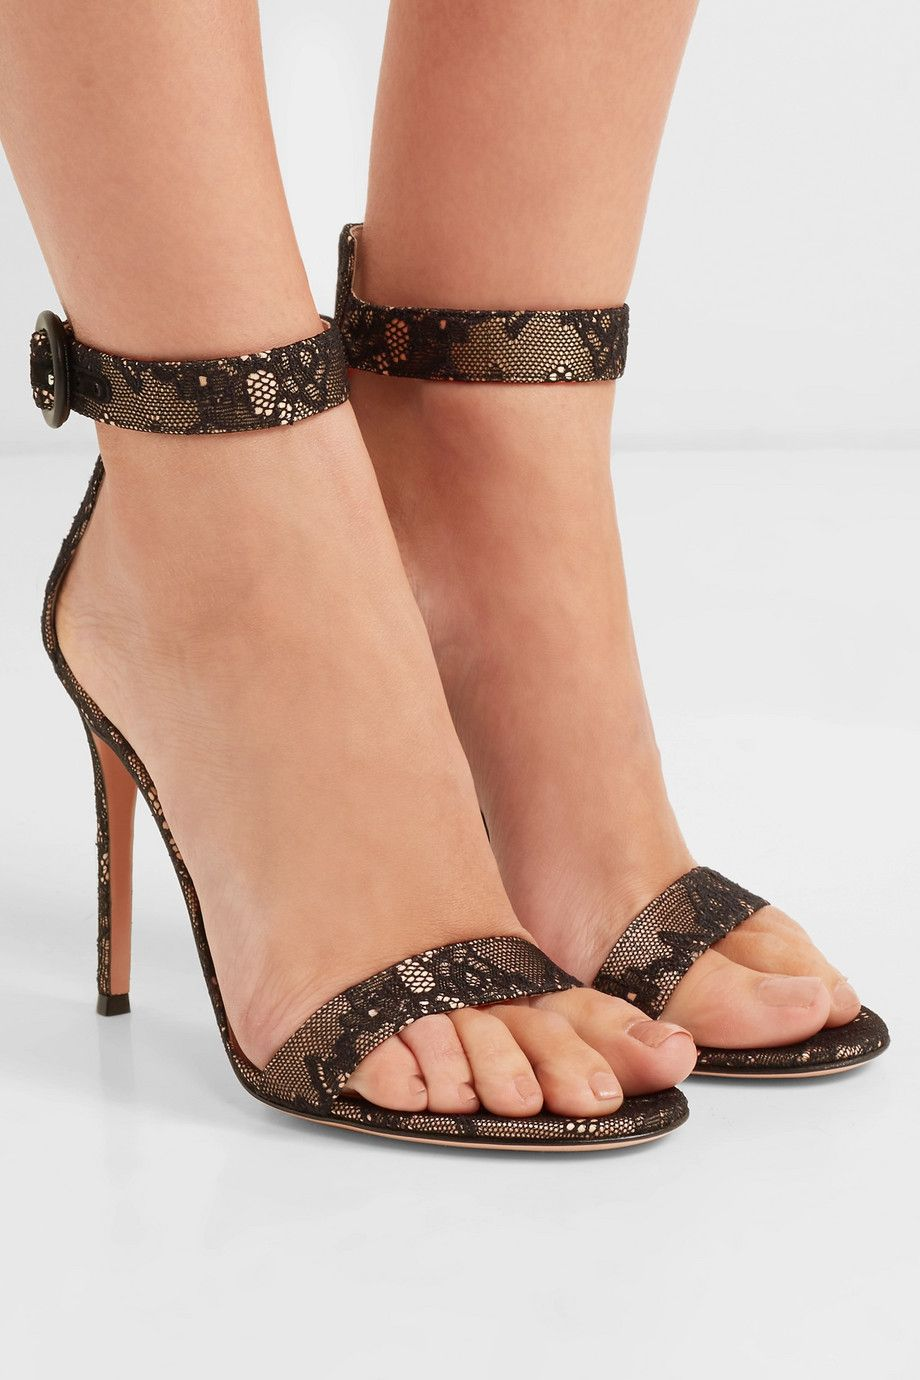 Black Portofino 105 Lace Sandals Gianvito Rossi In 2020 Lace Sandals Ankle Strap Sandals Heels Dress Shoes Womens